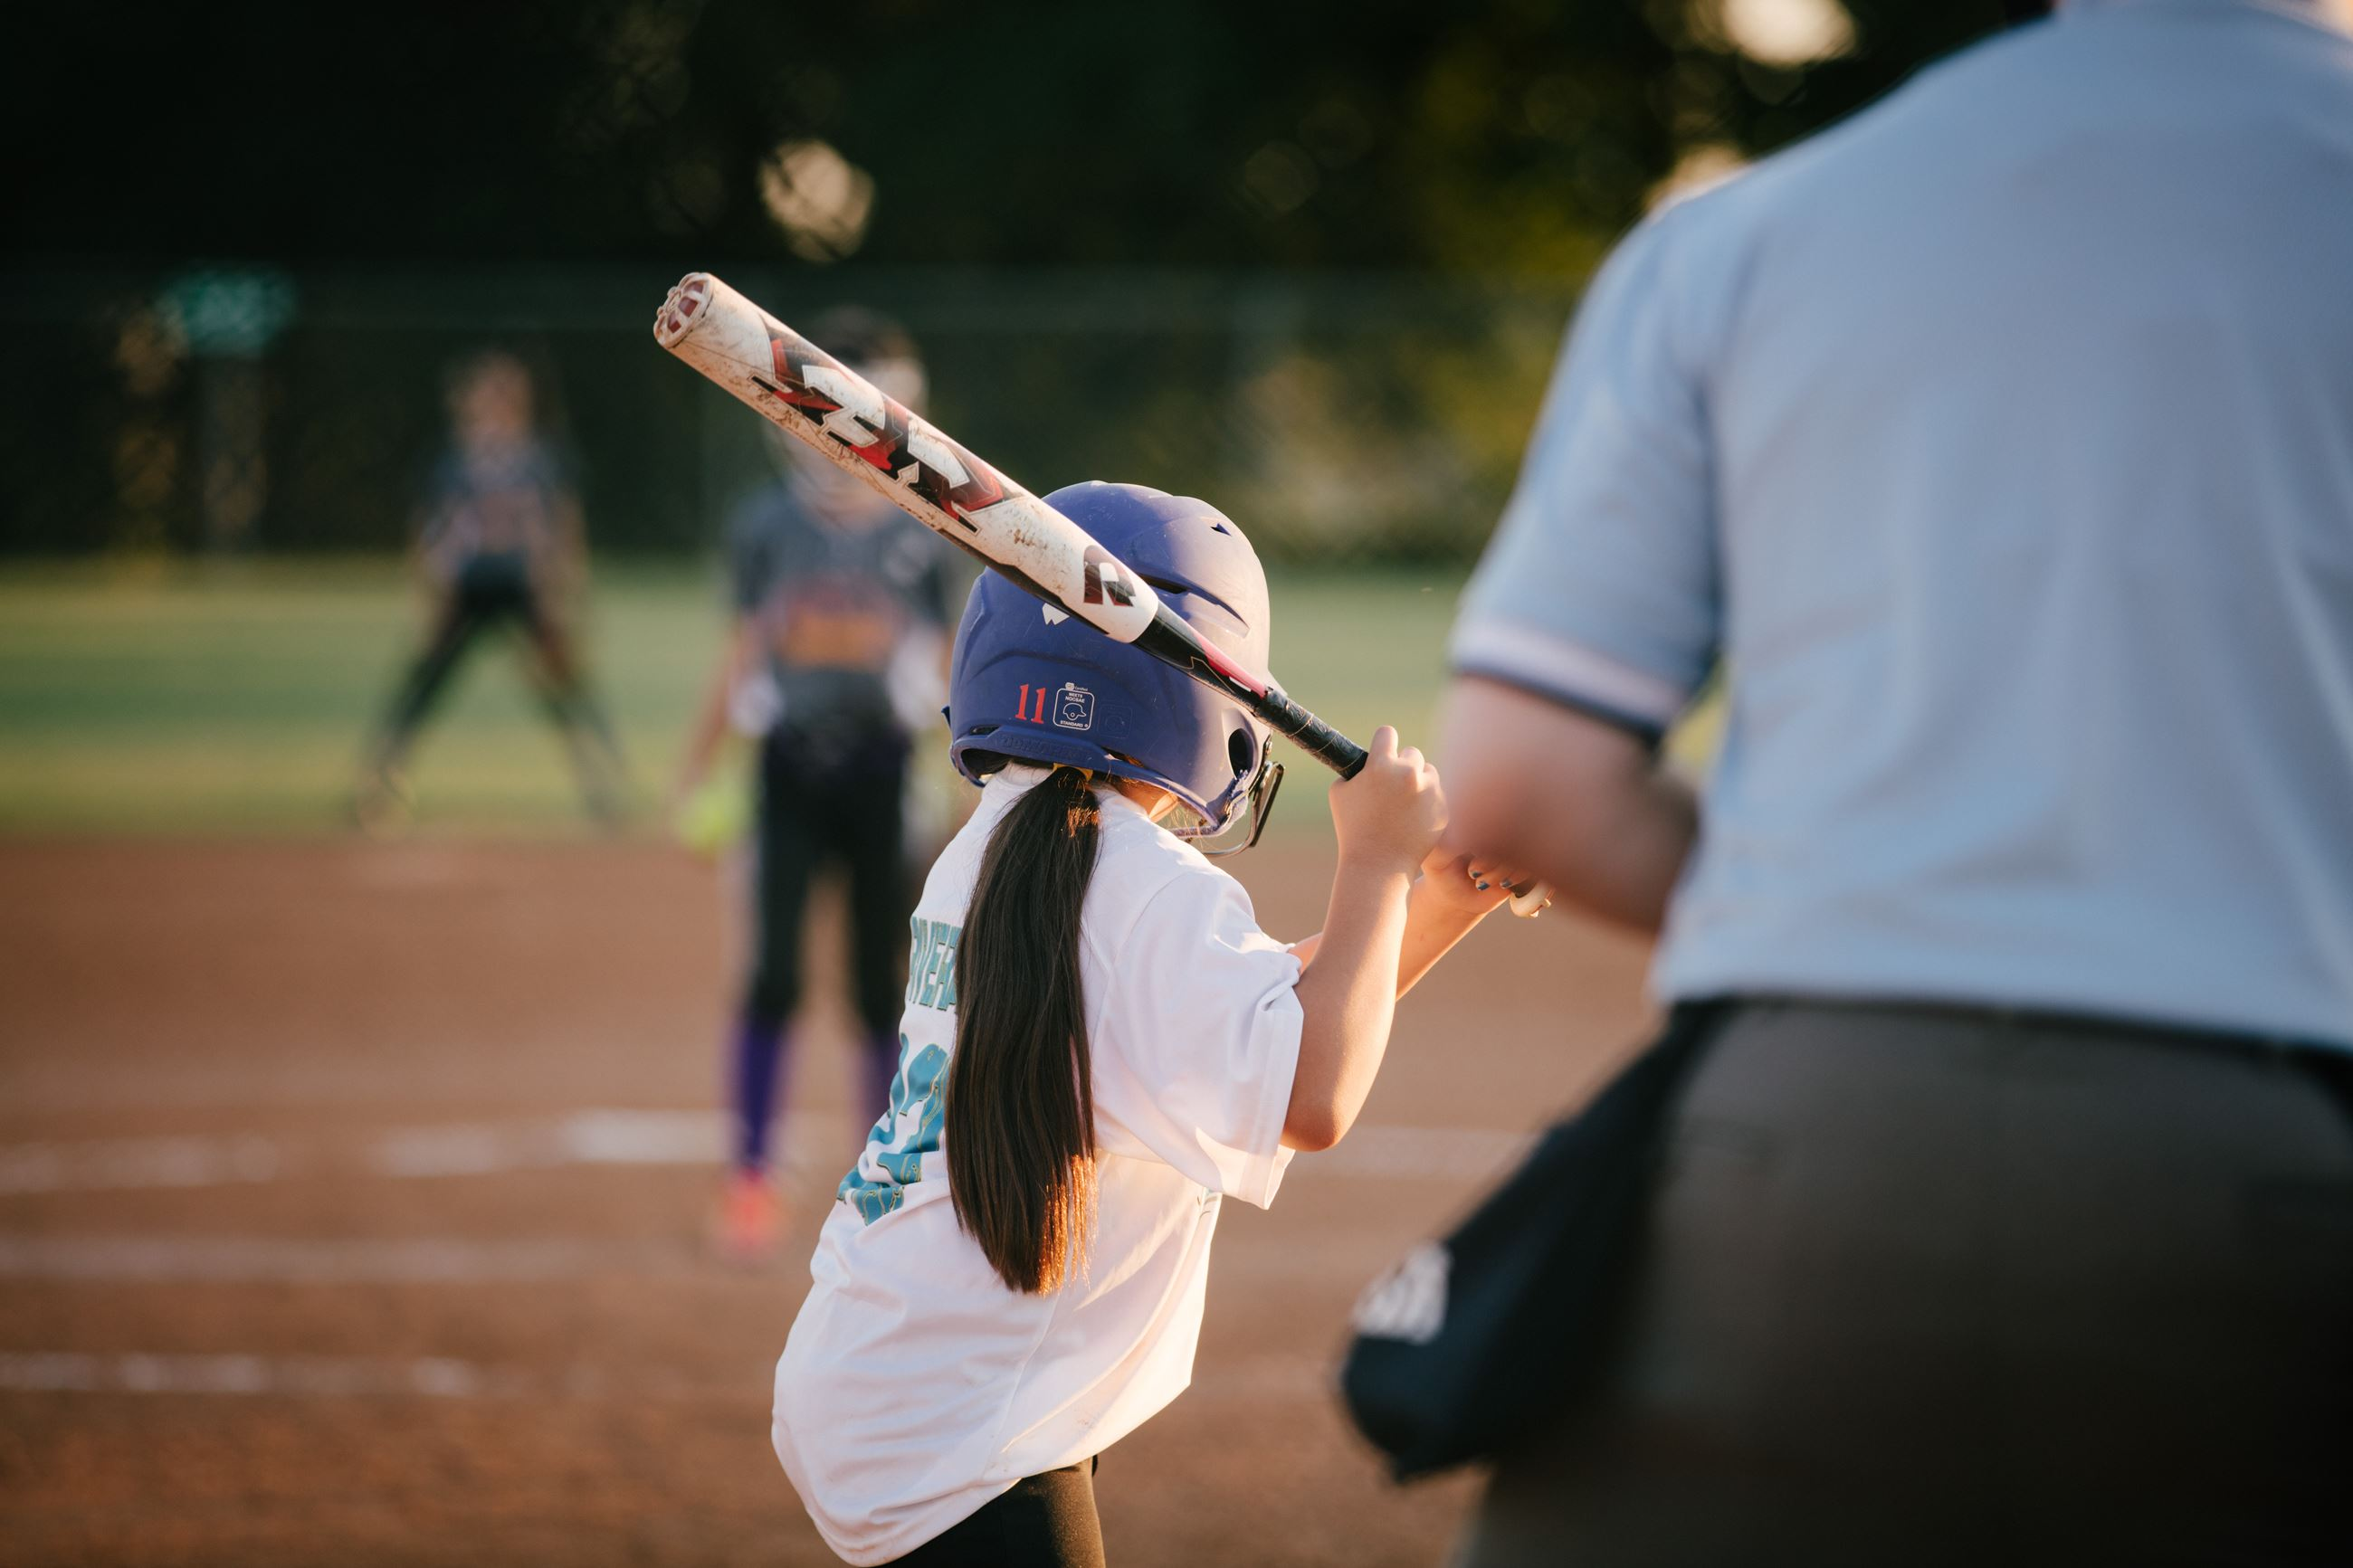 Softball Player at Valley Ridge Park